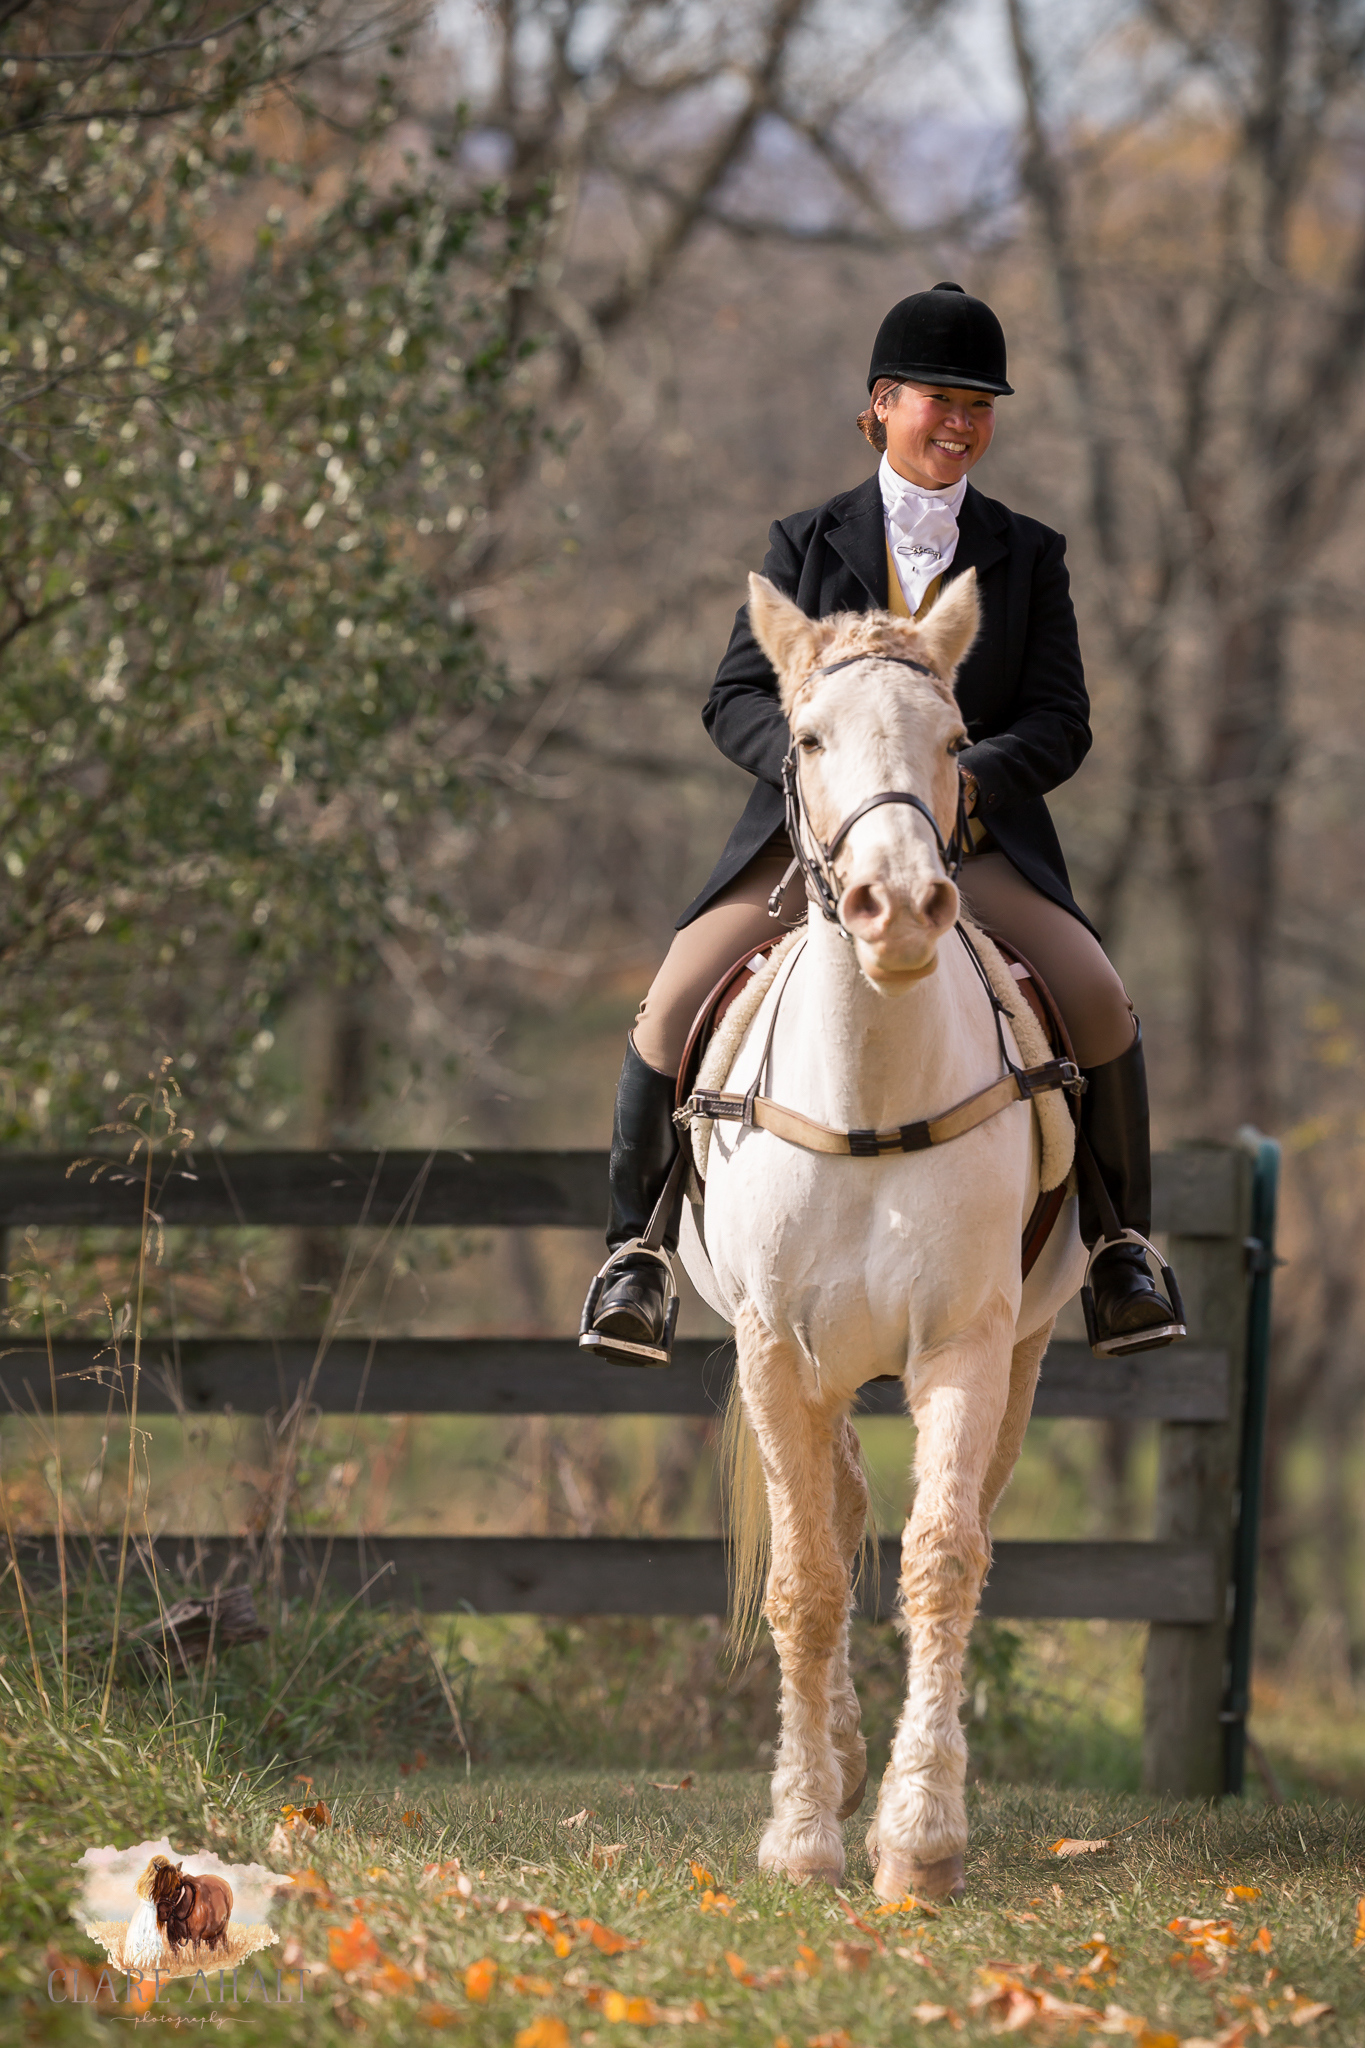 Best_Equestrian_Photographer_Maryland_equine_photographer_northern_virginia_equestrian_Photographer-73.jpg